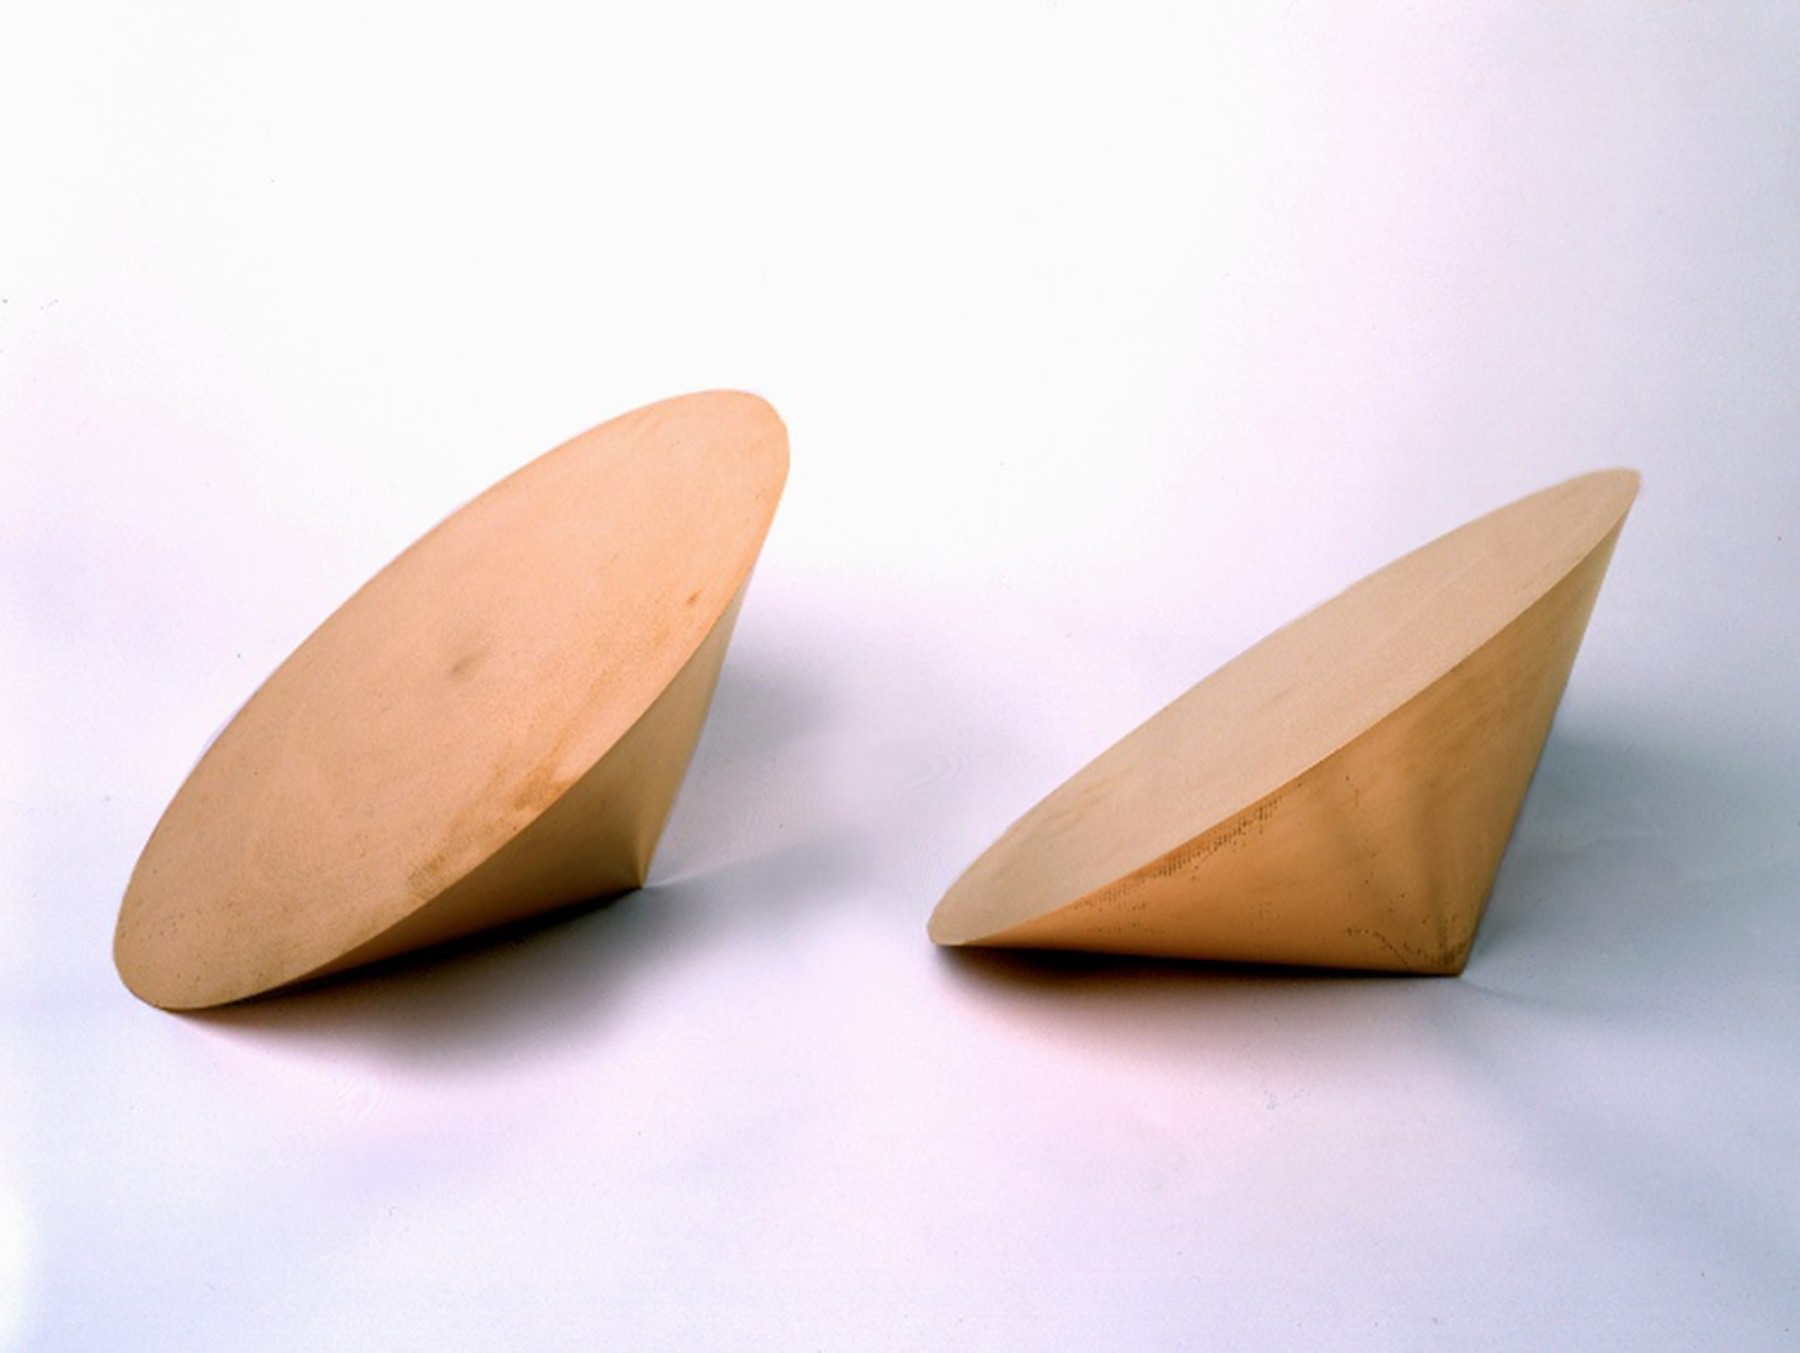 Image of Roni Horn, Pair Object, 1990